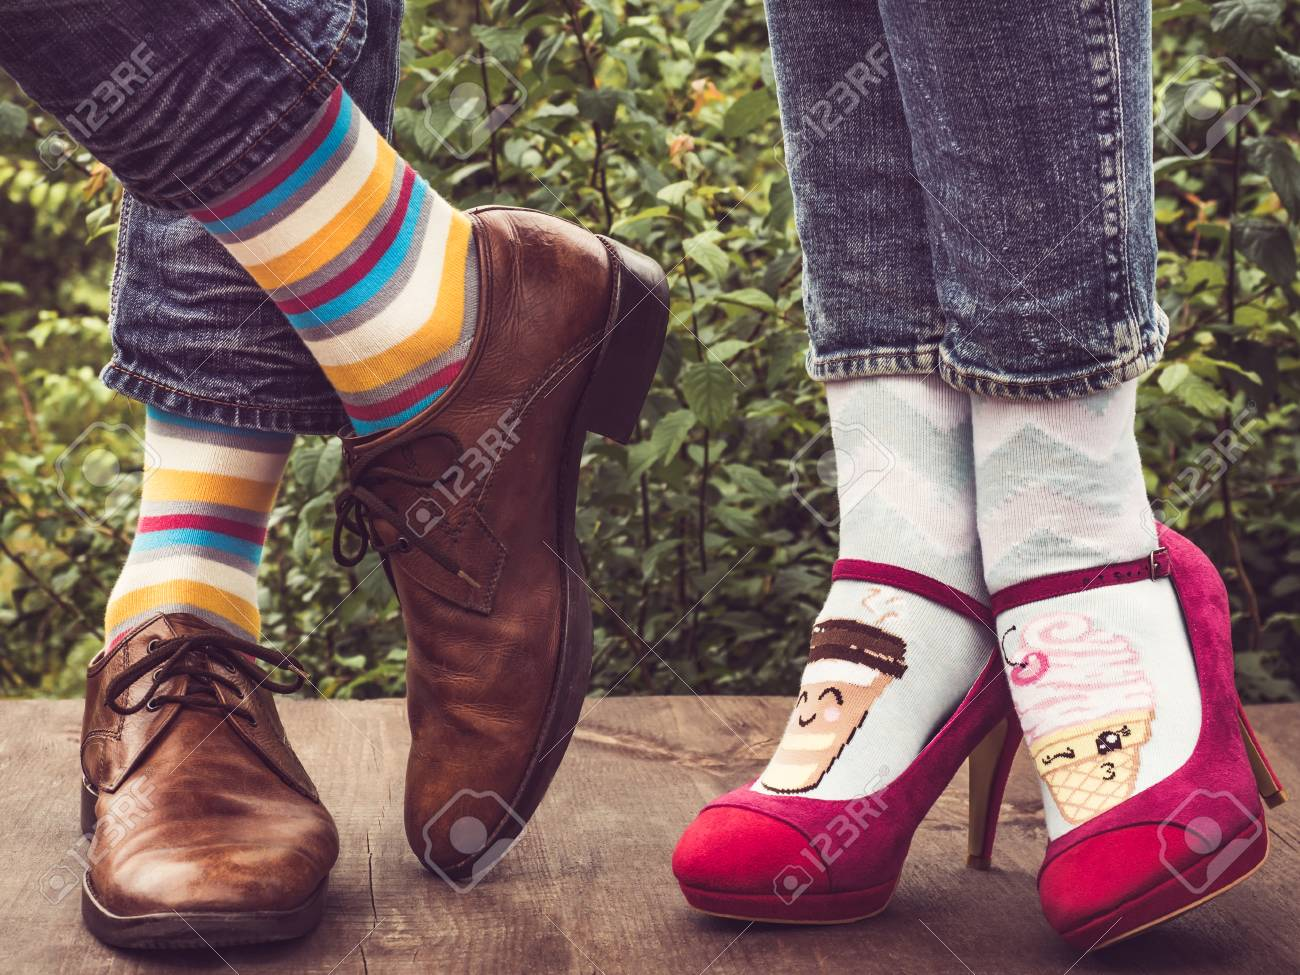 1806dd8d2 Men's and women's feet in stylish shoes, bright, colorful socks with  stripes patterns and pictures of ice cream on the wooden terrace on the  background of ...